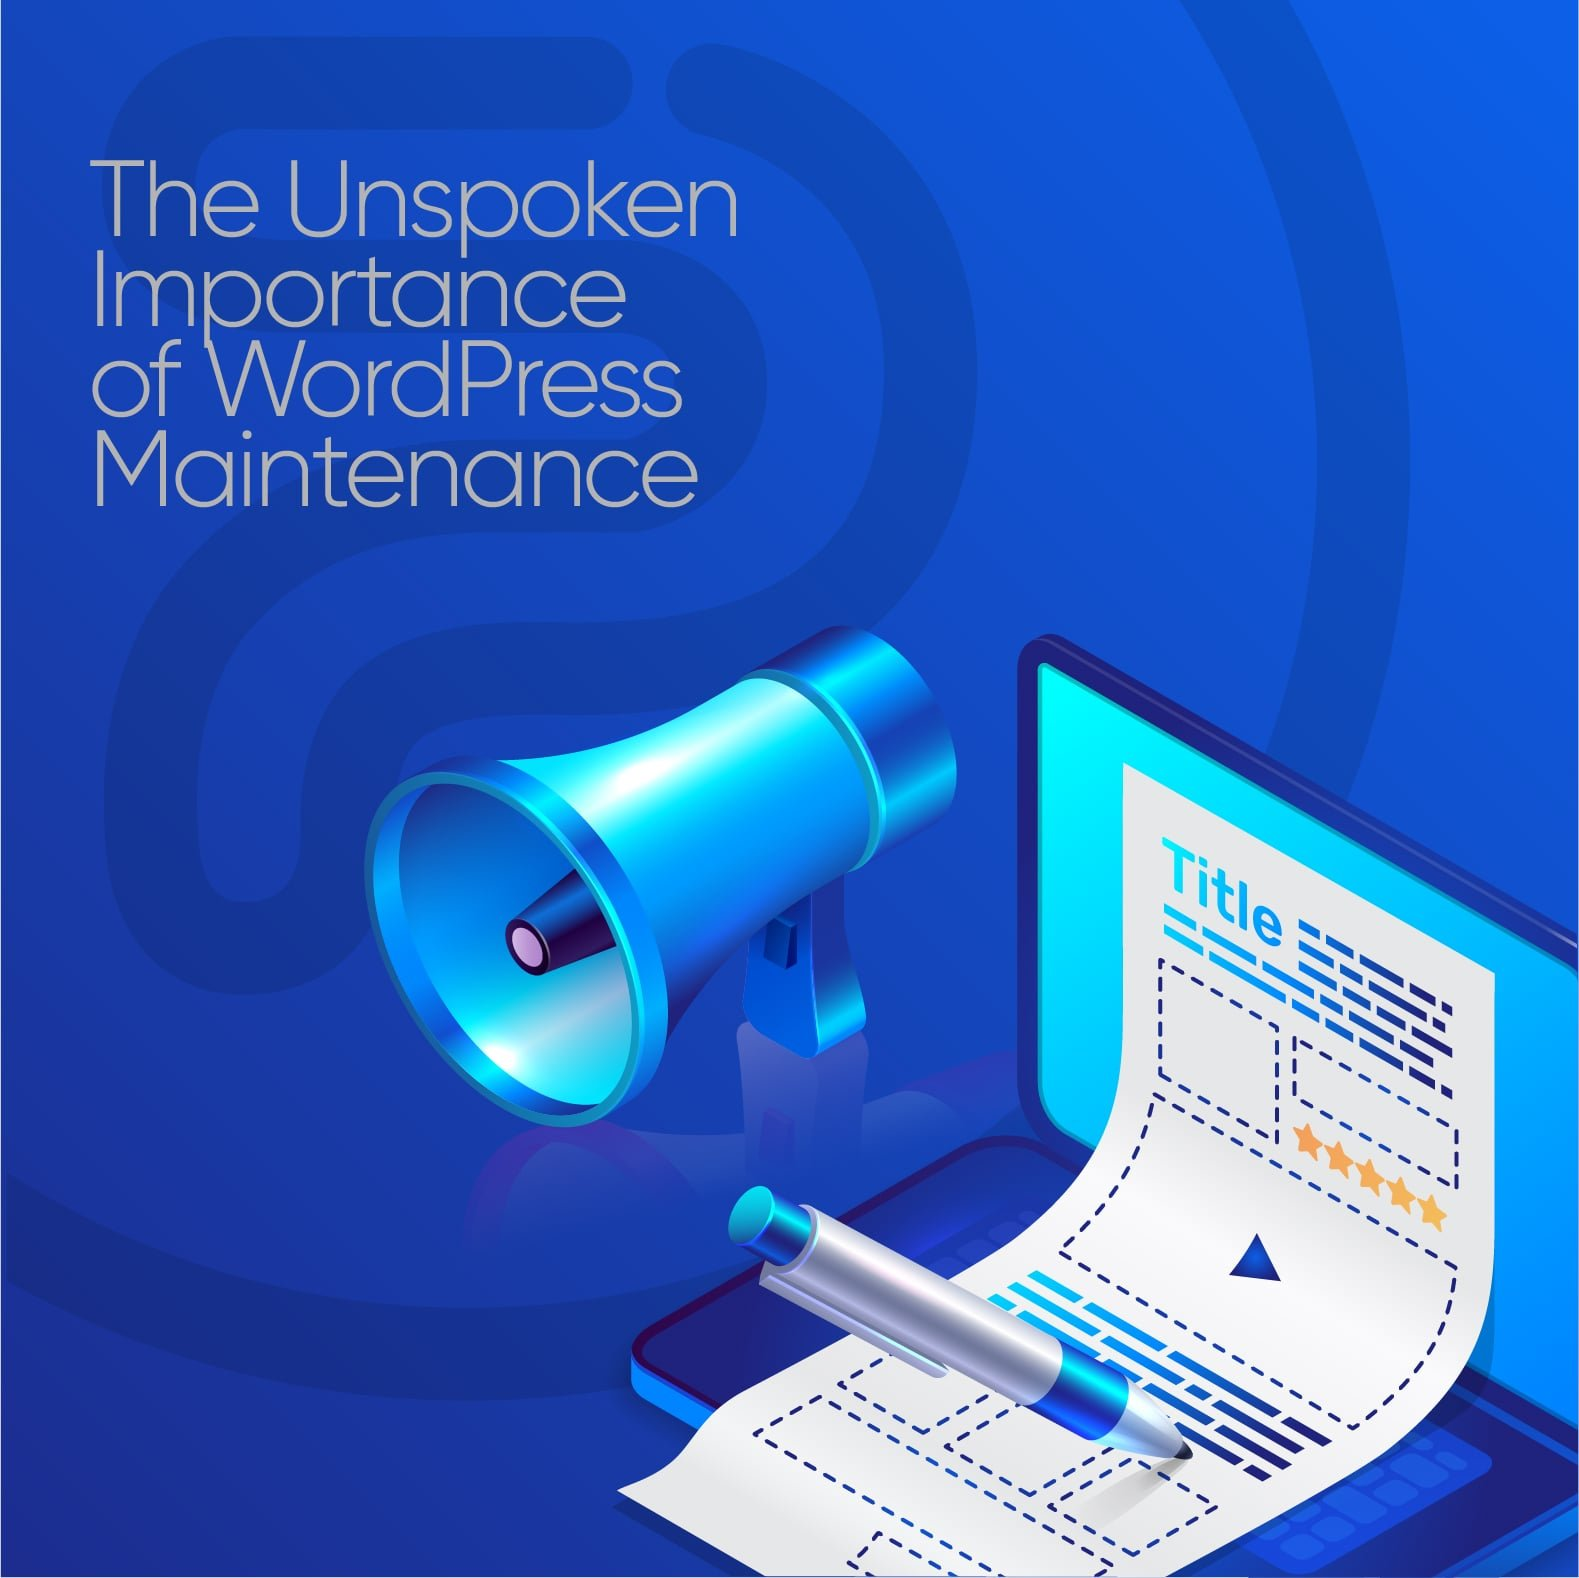 The Unspoken Importance of WordPress Maintenance